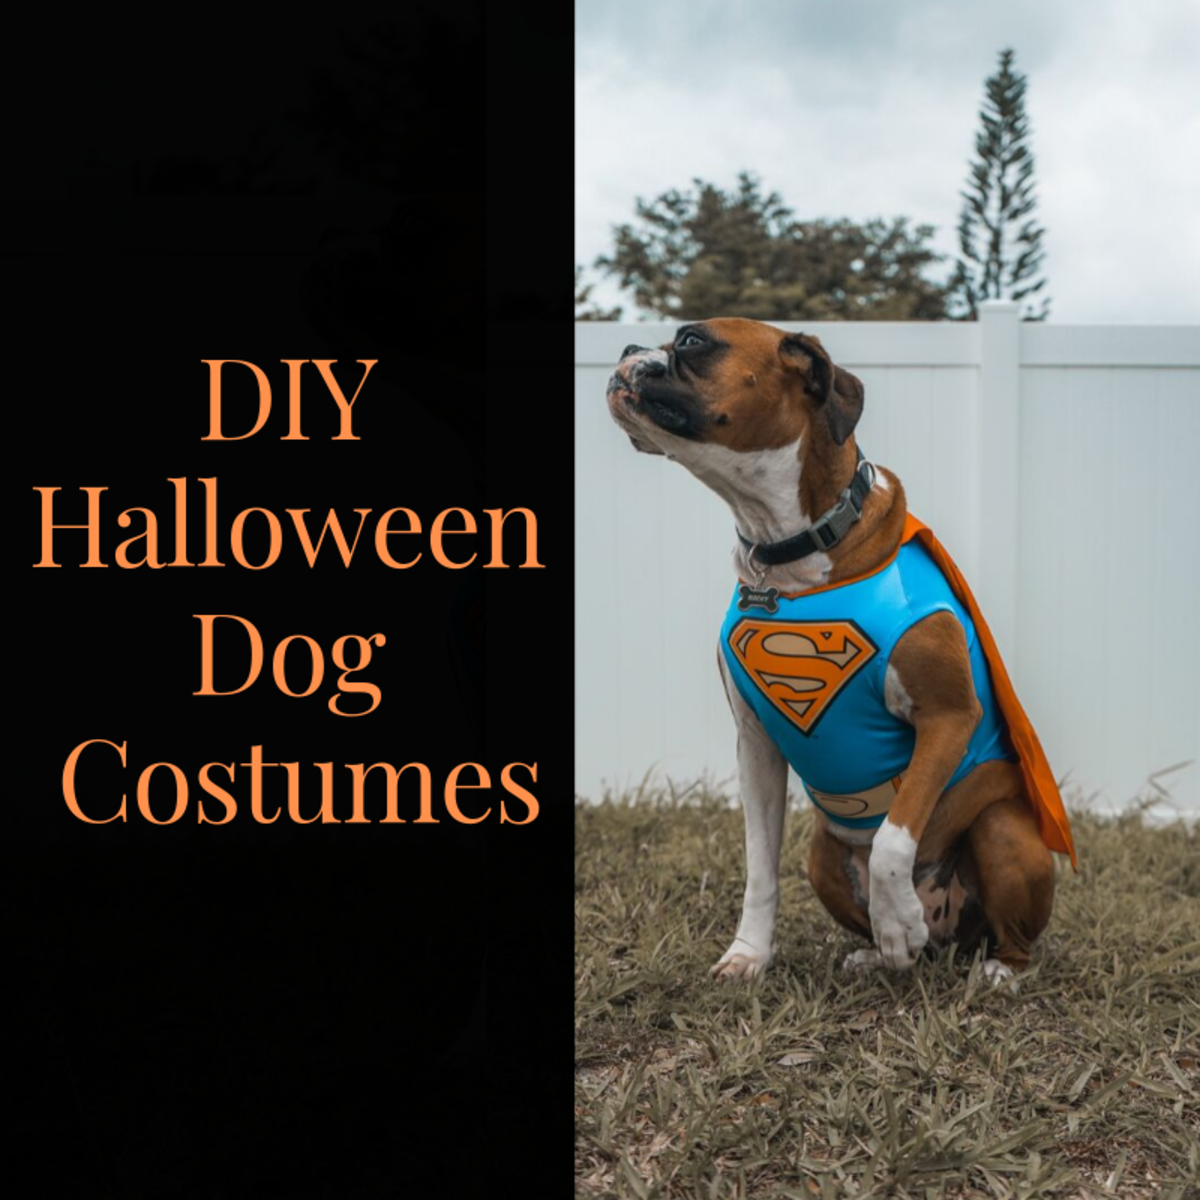 10 DIY Halloween Dog Costumes That Won't Drive Them Crazy